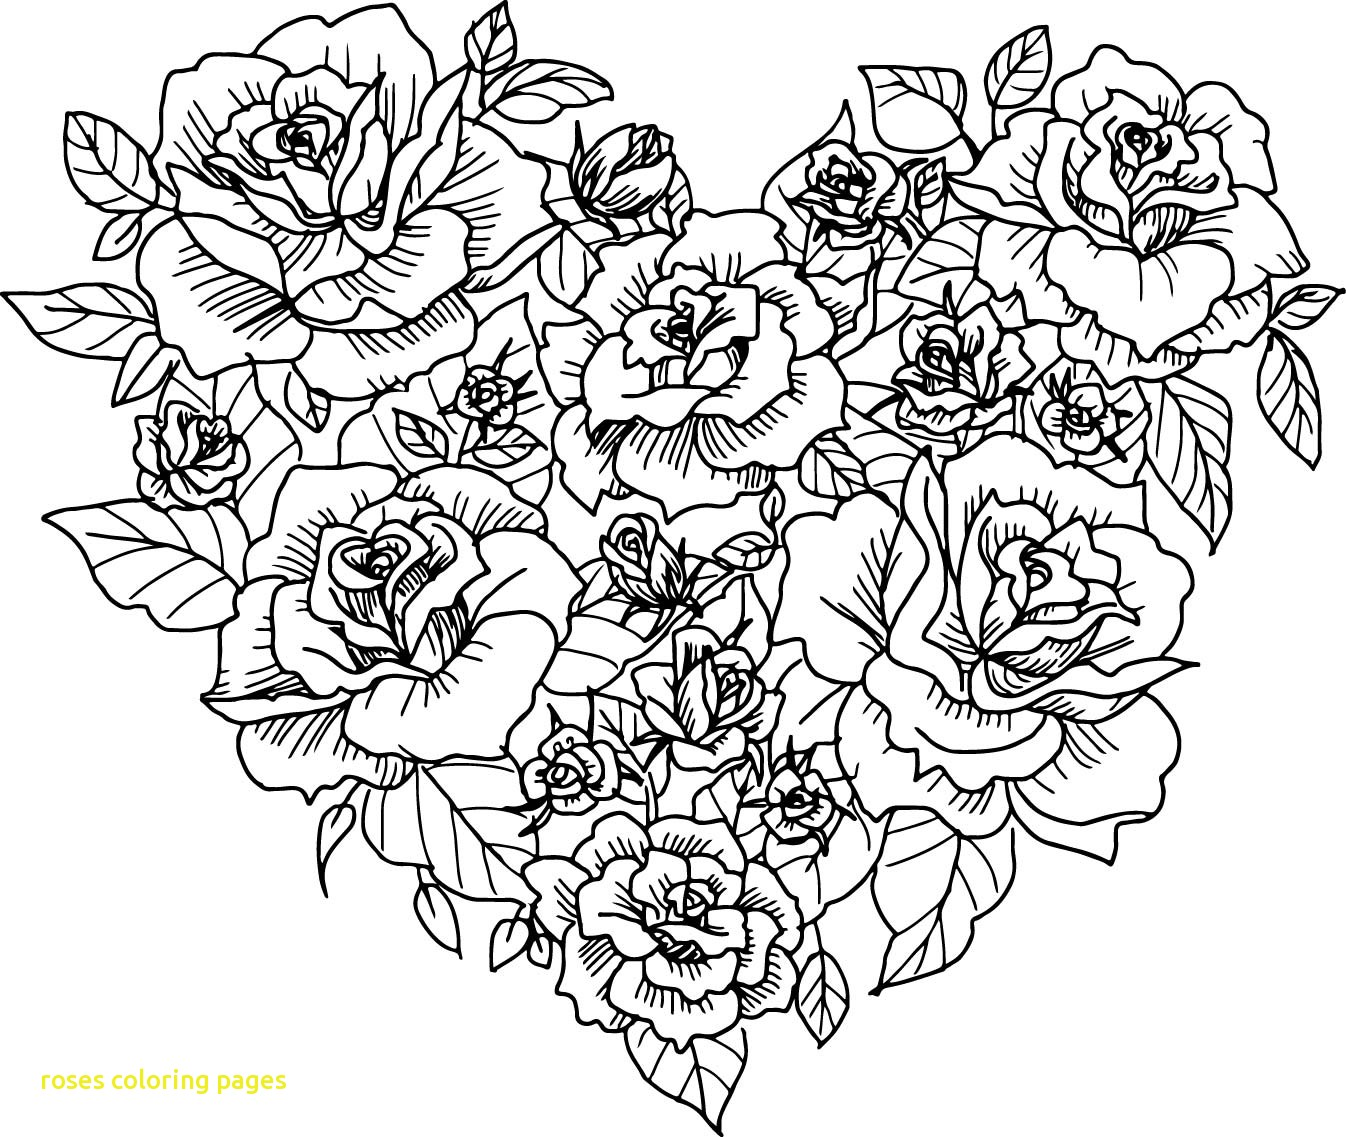 1346x1137 Coloring Book Roses Pages With Heart Rose Sketch P On Valentines